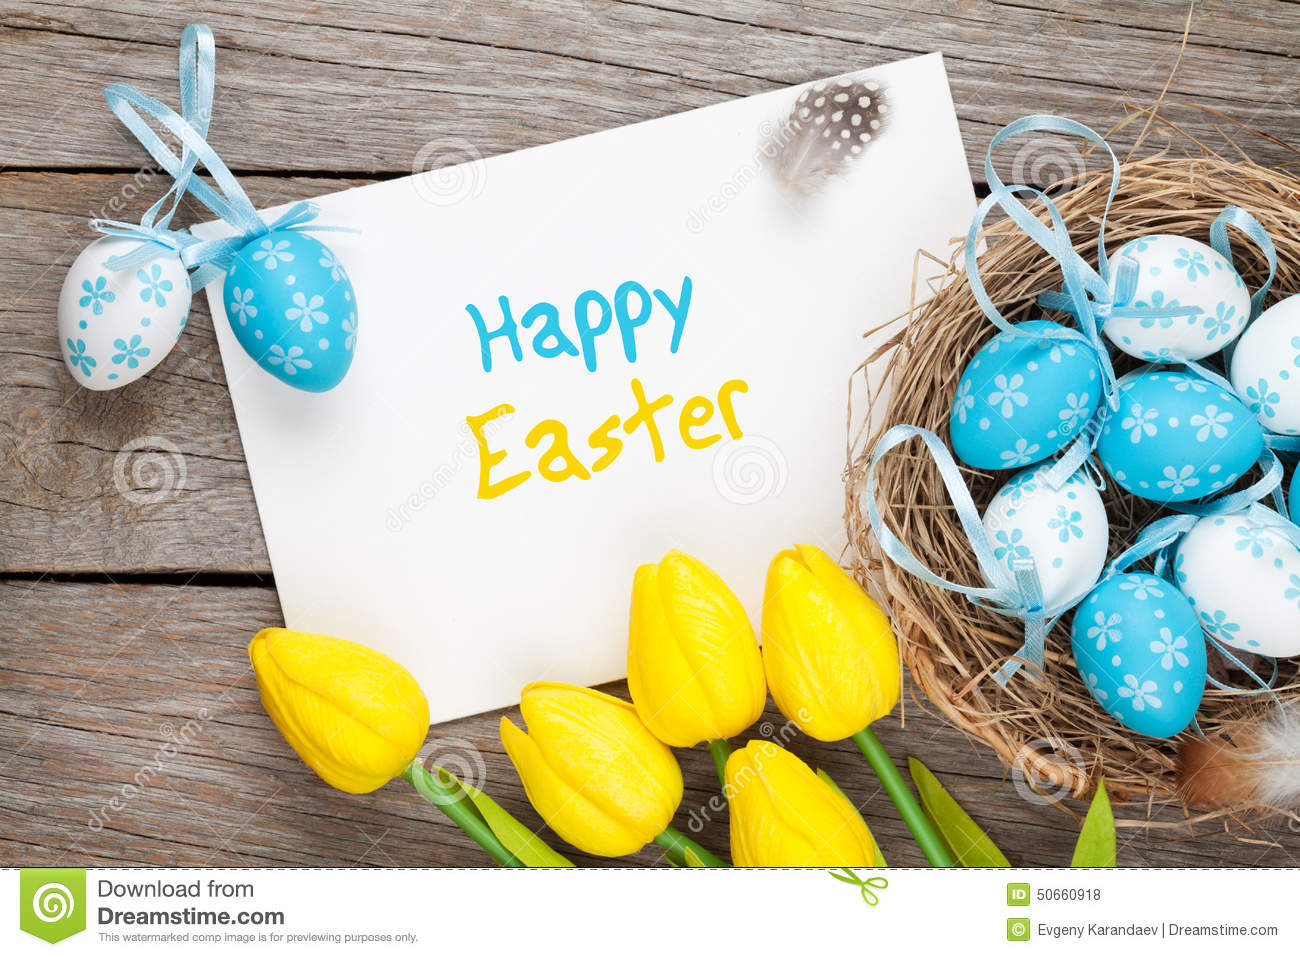 Easter greeting card with blue and white eggs and yellow tulips